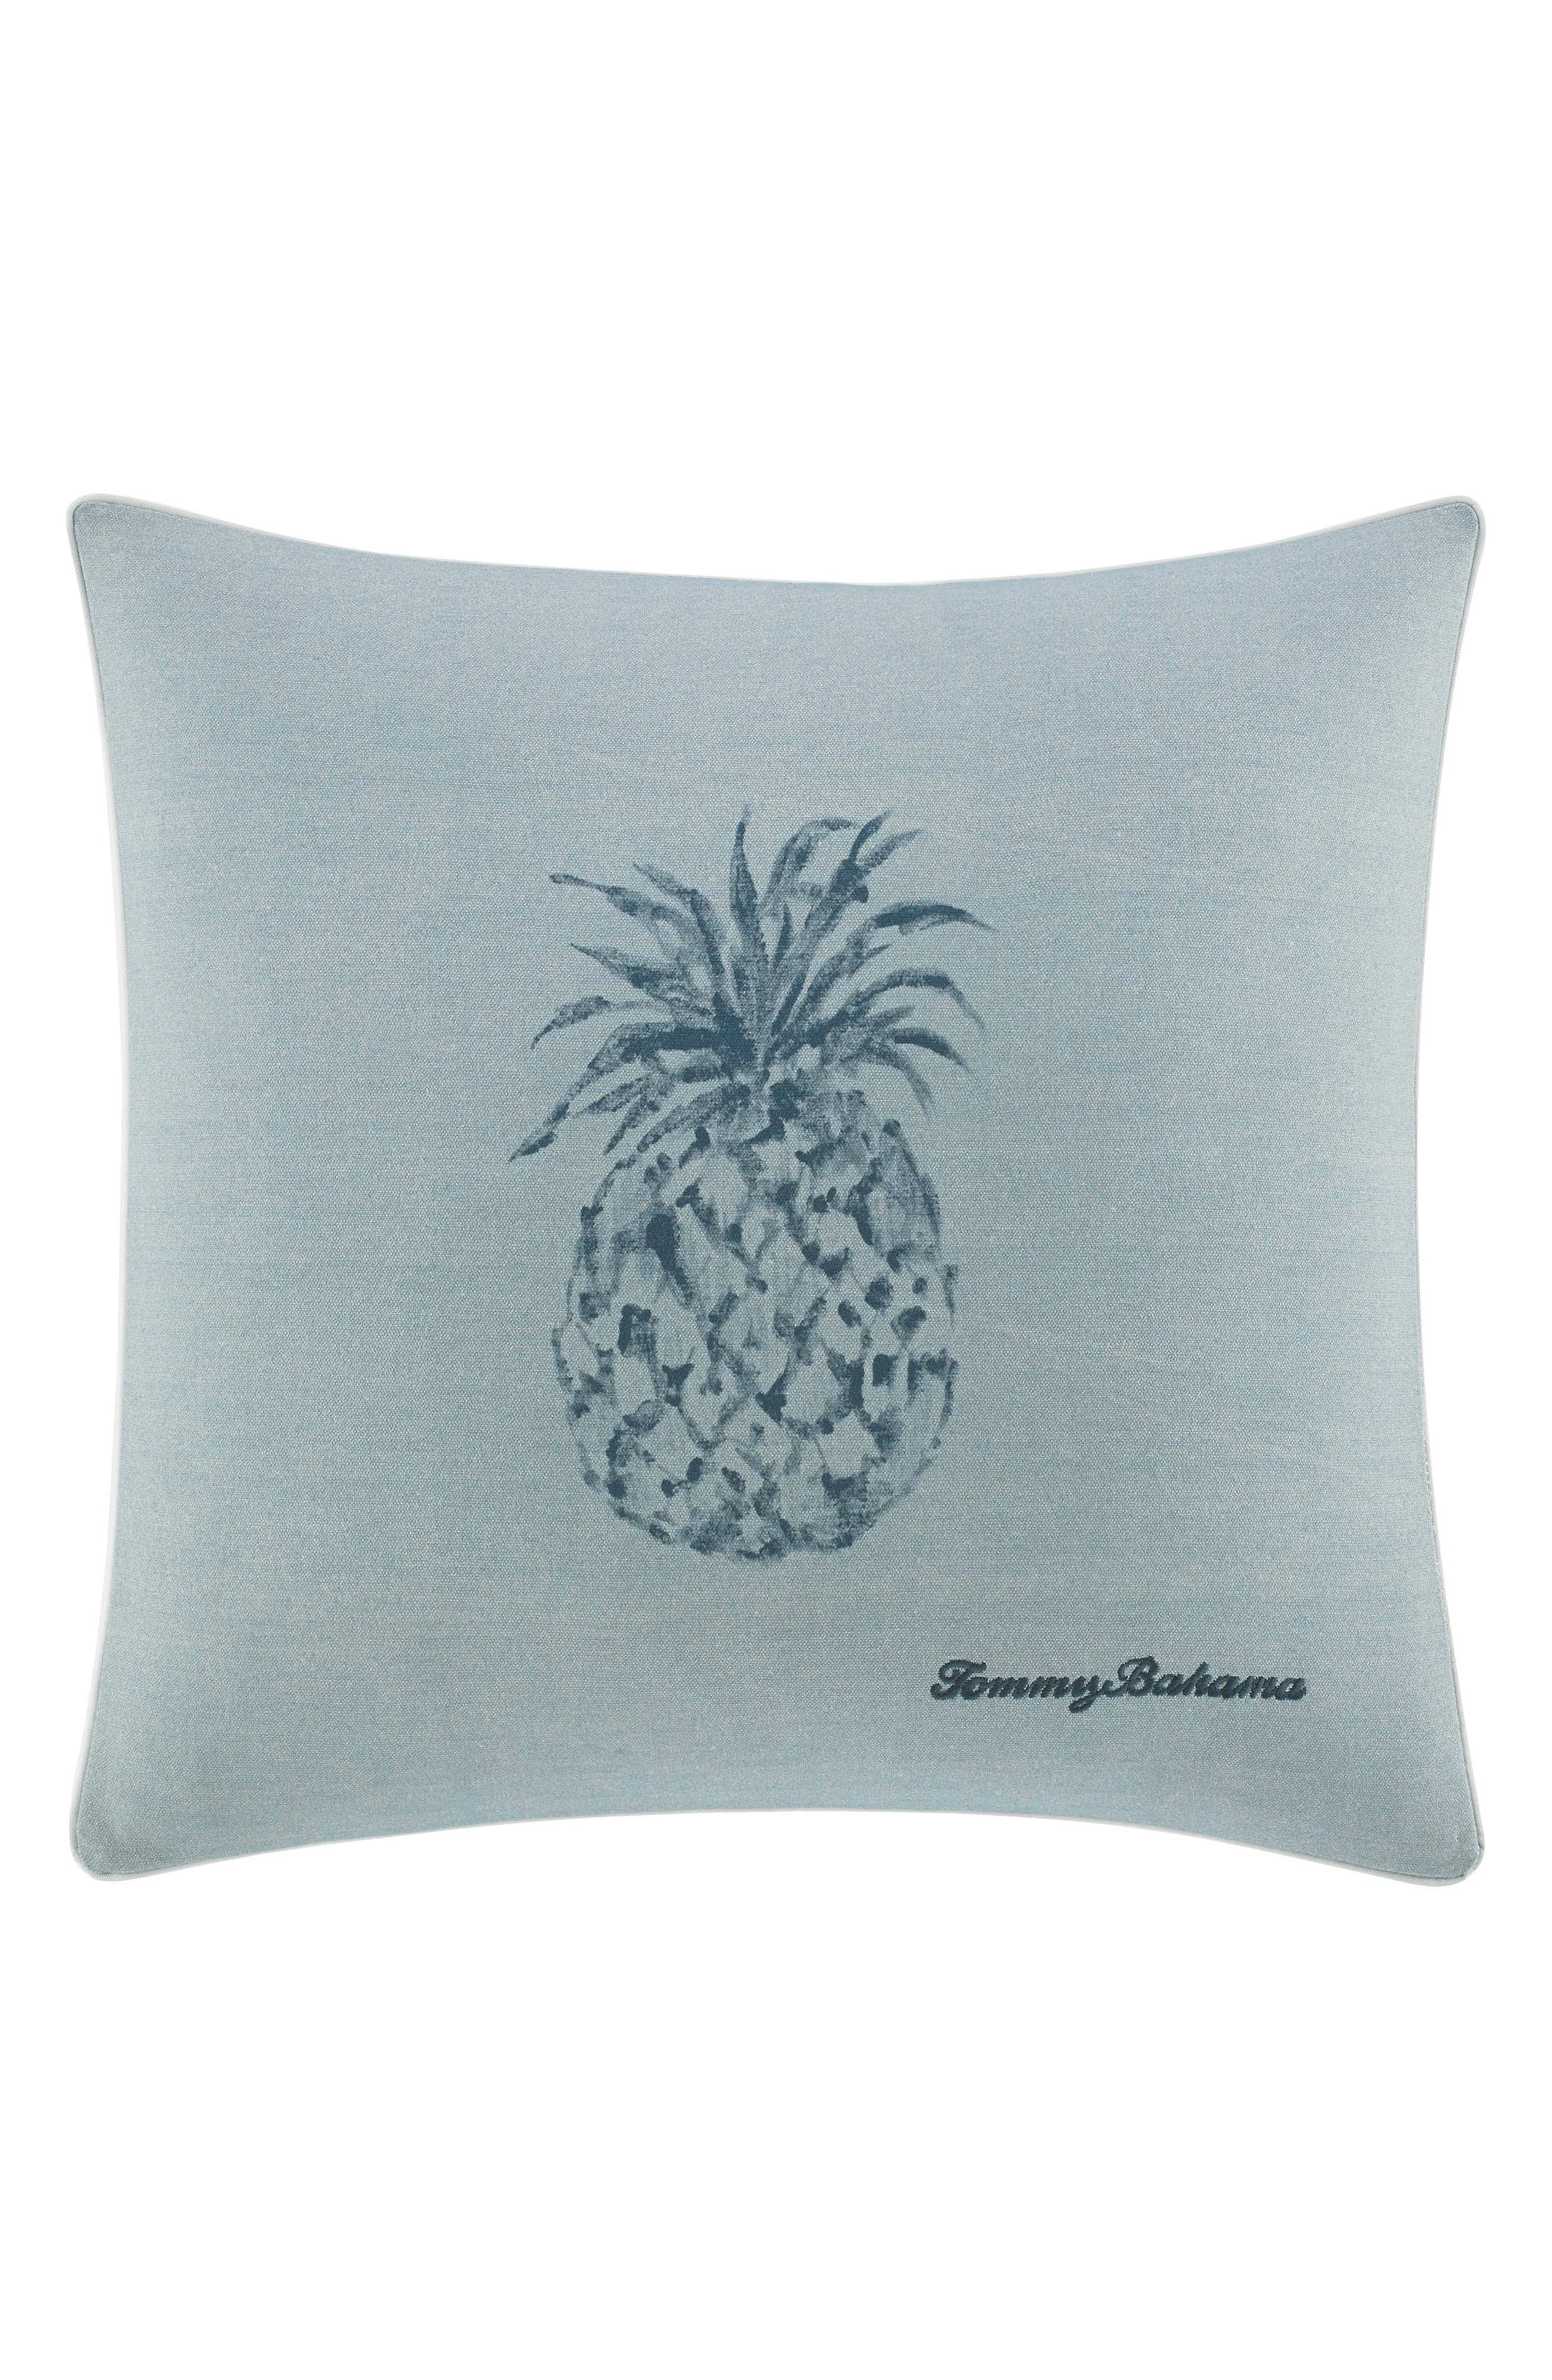 Main Image - Tommy Bahama Raw Coast Pineapple Pillow